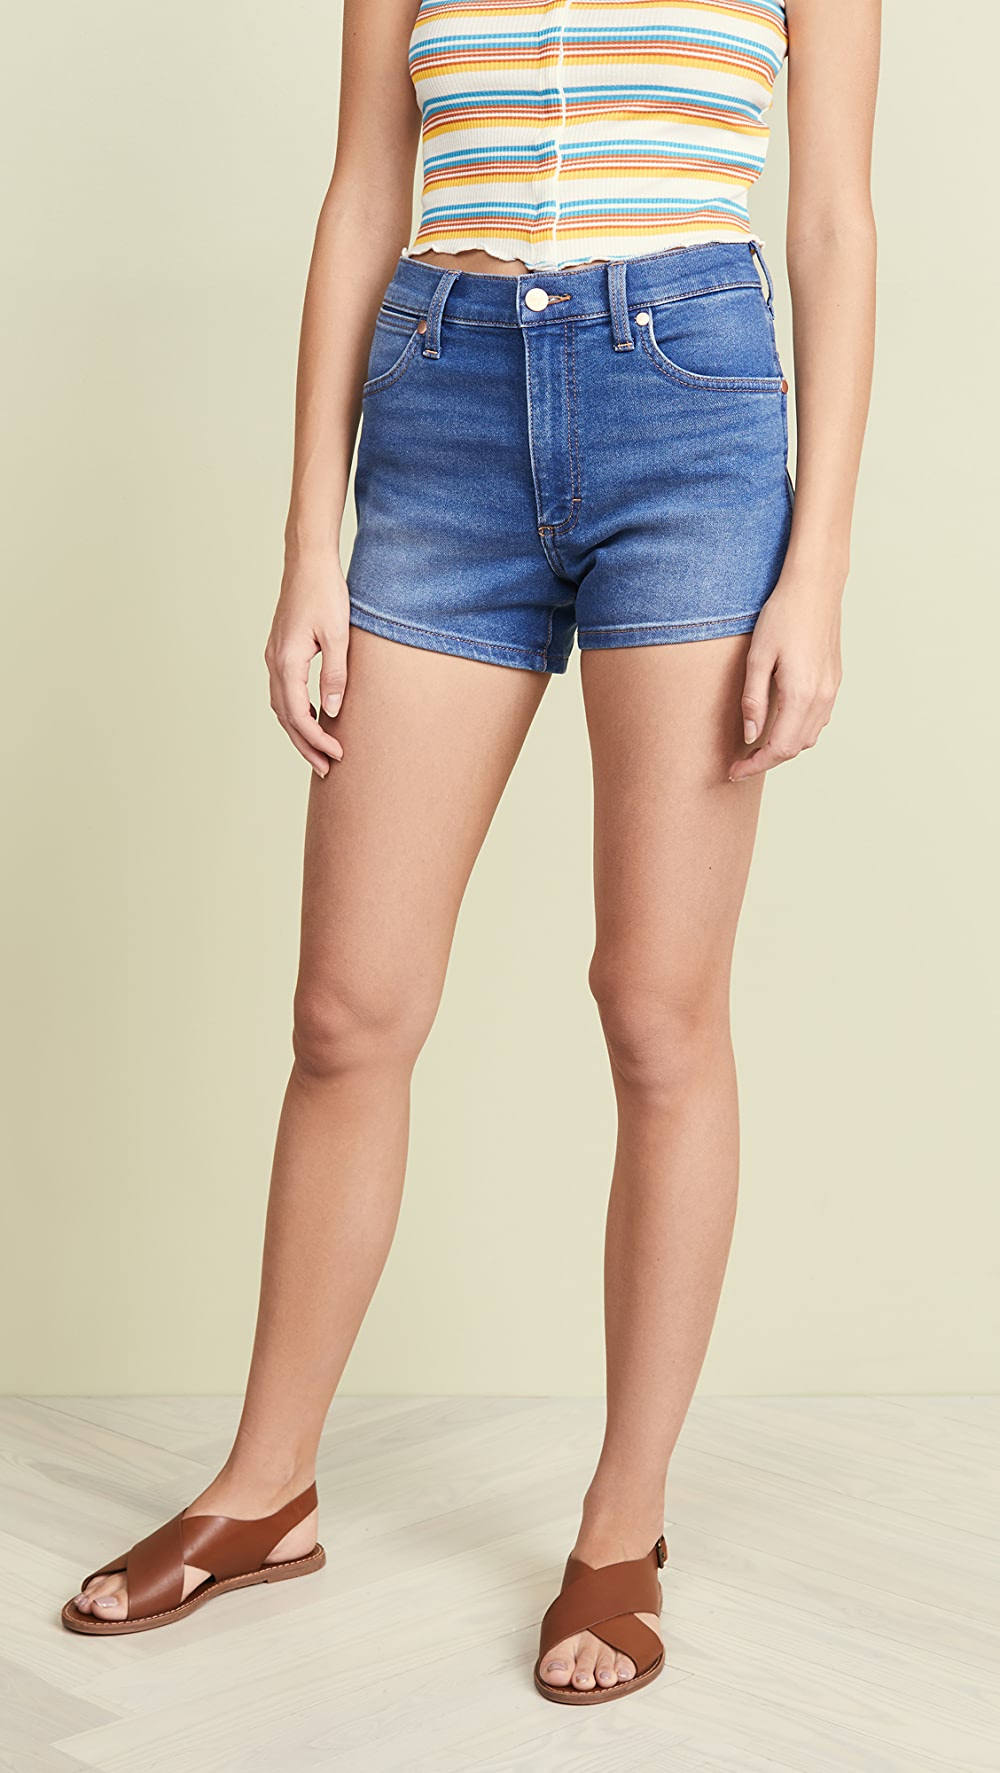 Able Wrangler - Pin Up Shorts Sturdy Construction